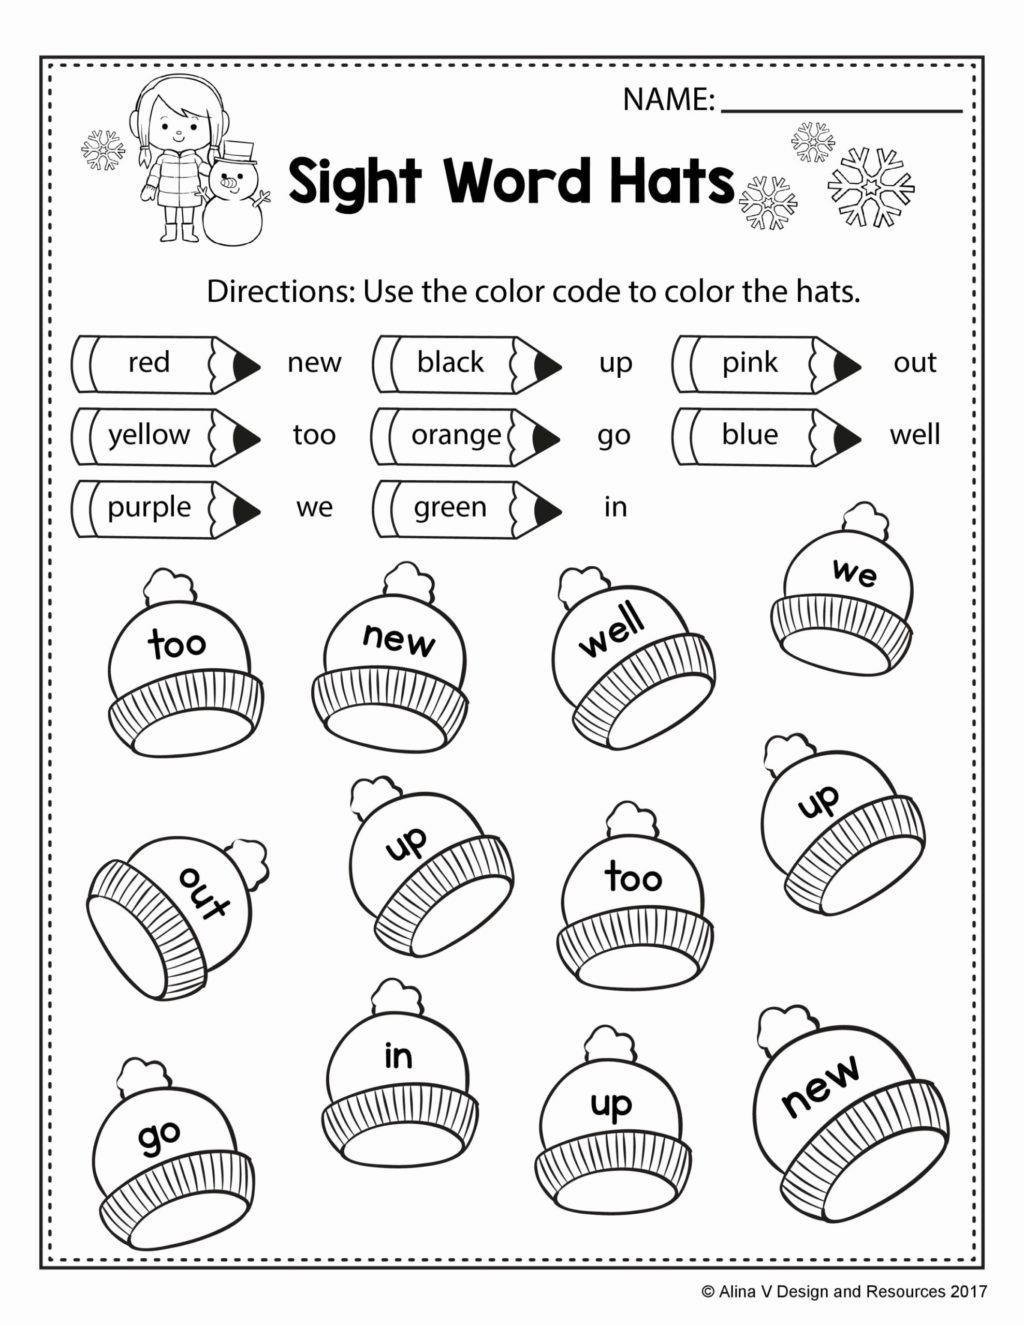 time worksheets for kindergarten free printable high schoolellingohe quarter hour 8th grade spelling friendship middle subtraction word problems human skeleton kids ii practice math scaled 1024x1325